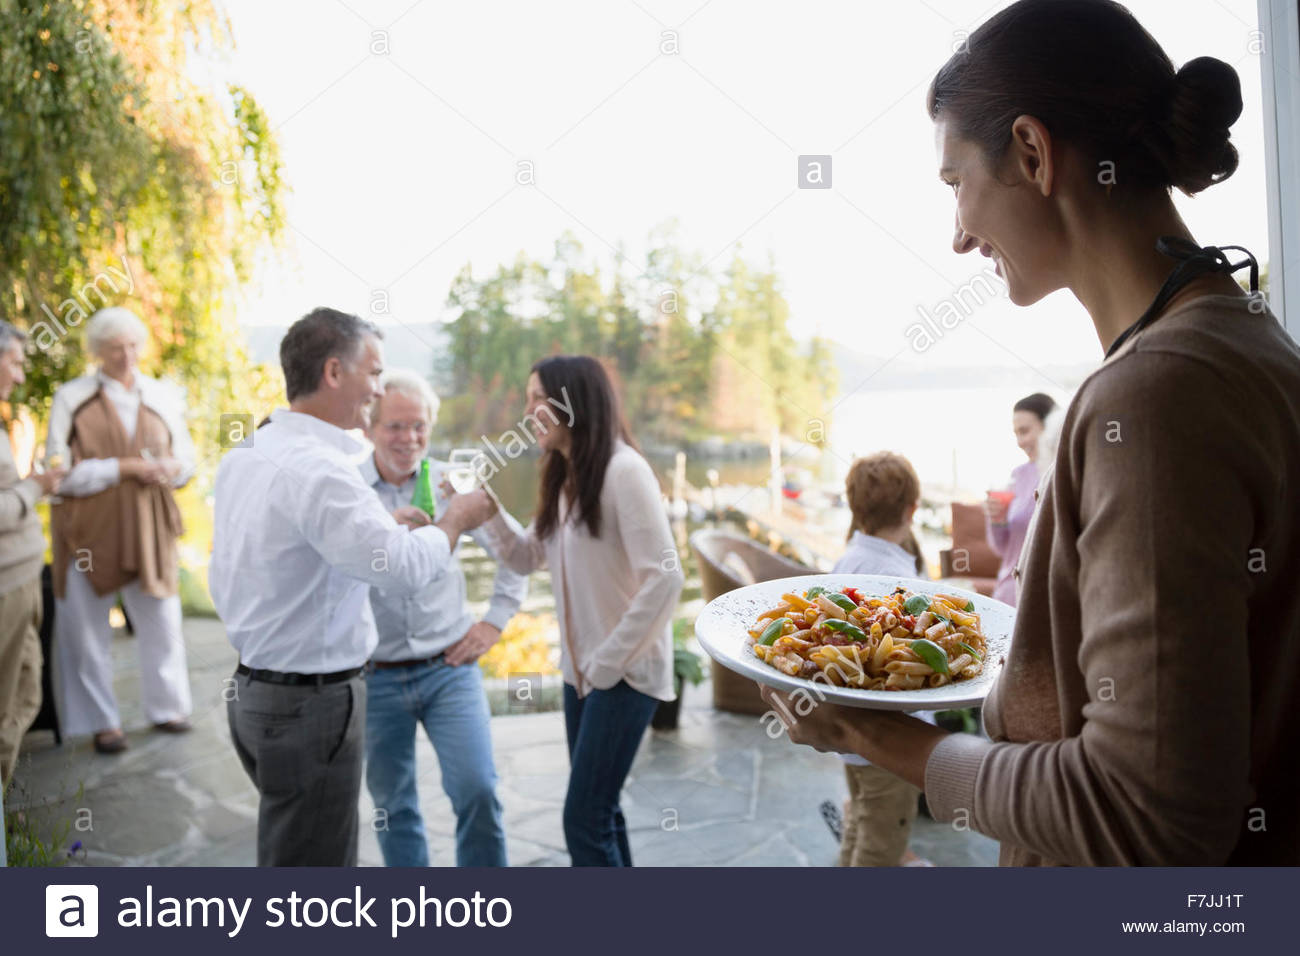 Woman serving food on patio - Stock Image